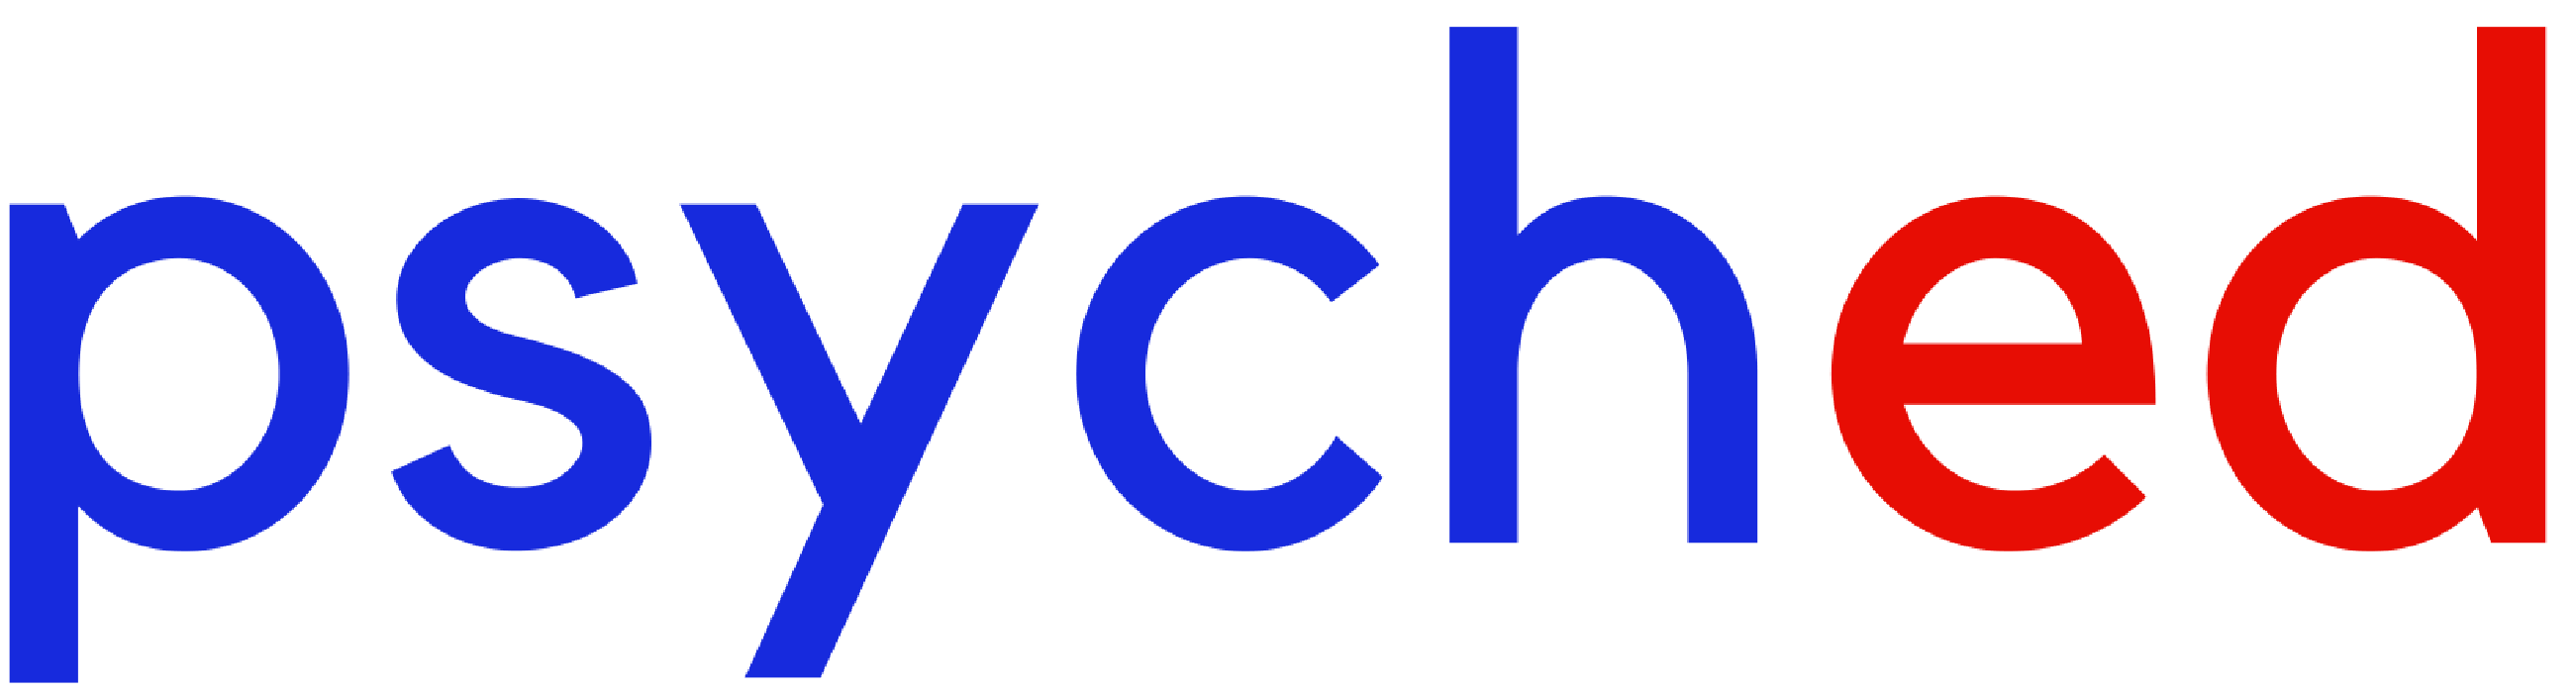 psyched logo rectangle cropped